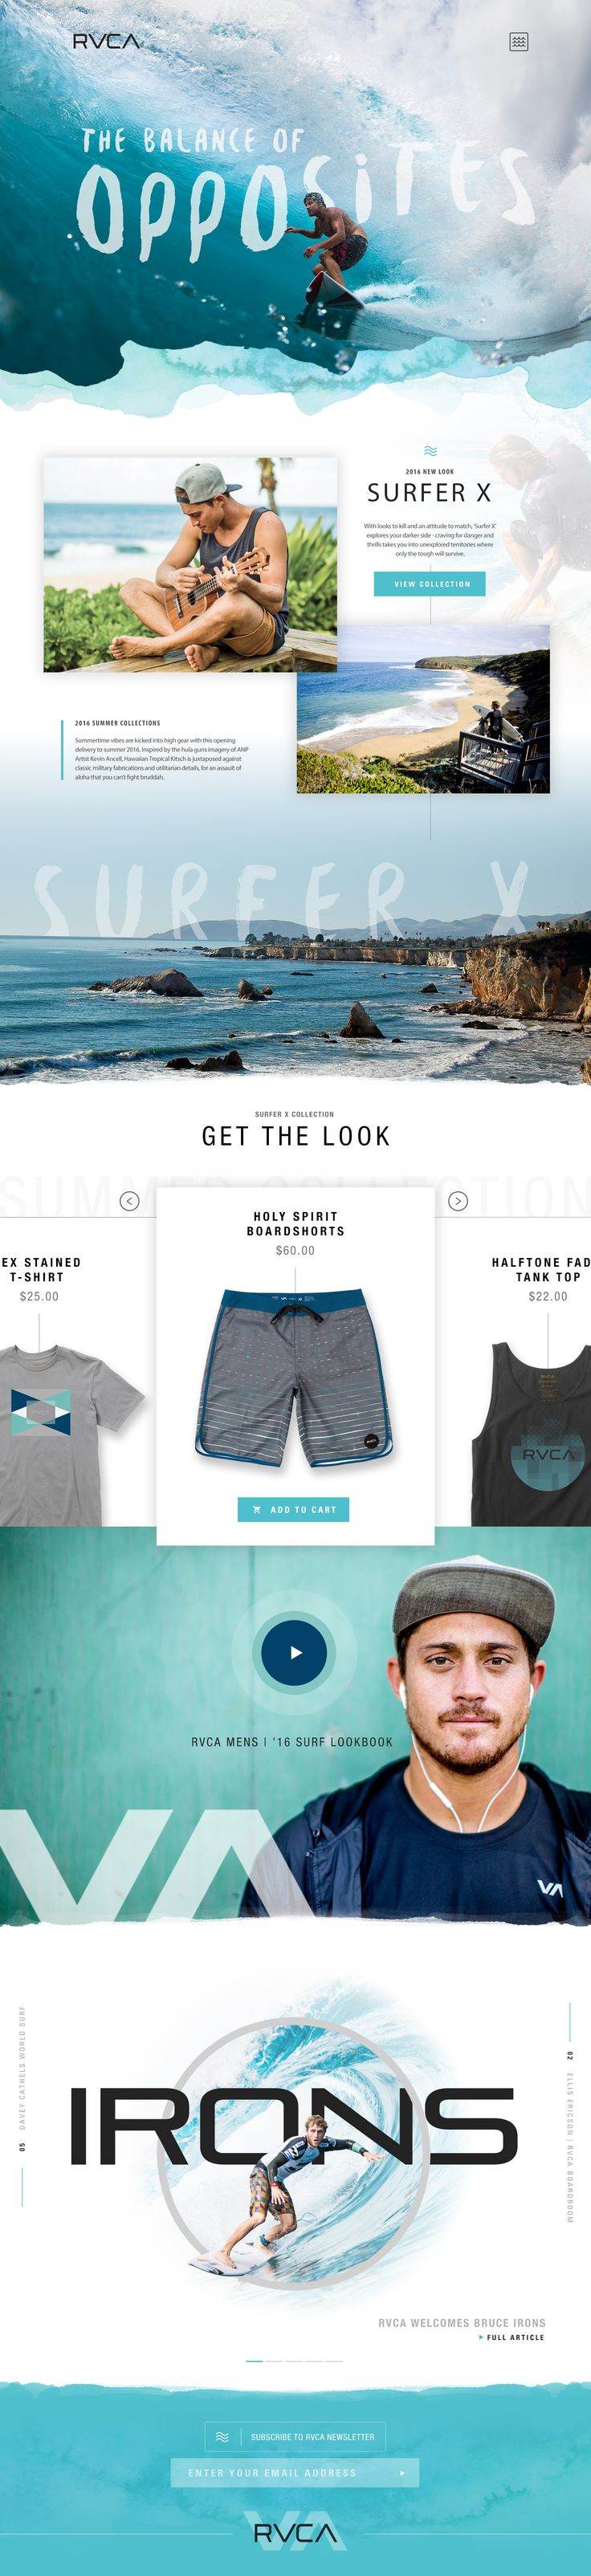 this is cool post , but what I would have did was also put boards up there for sale , just like they did the swimming trunks on the page .also they could have put a little information about surfing or something I feel like it was kind of basic and rushed. http://ecommerce.jrstudioweb.com/